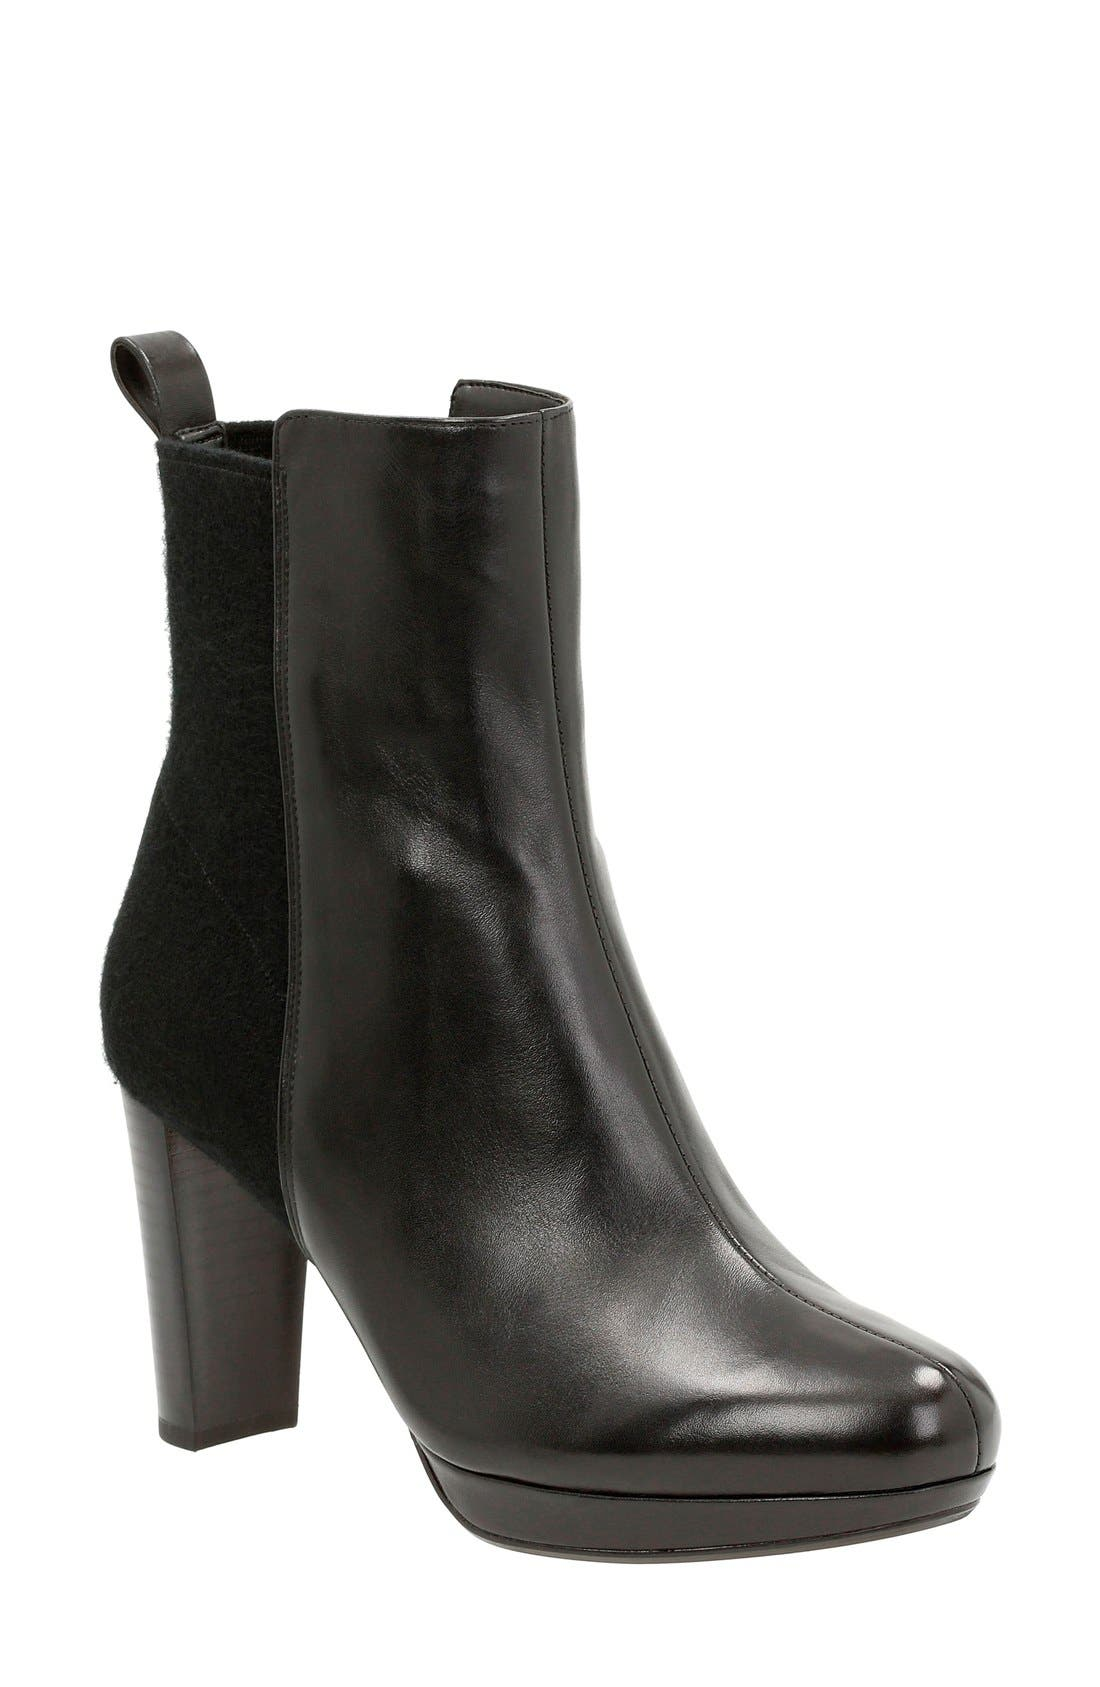 Alternate Image 1 Selected - Clarks® 'Kendra Porter' Ankle Boot (Women)